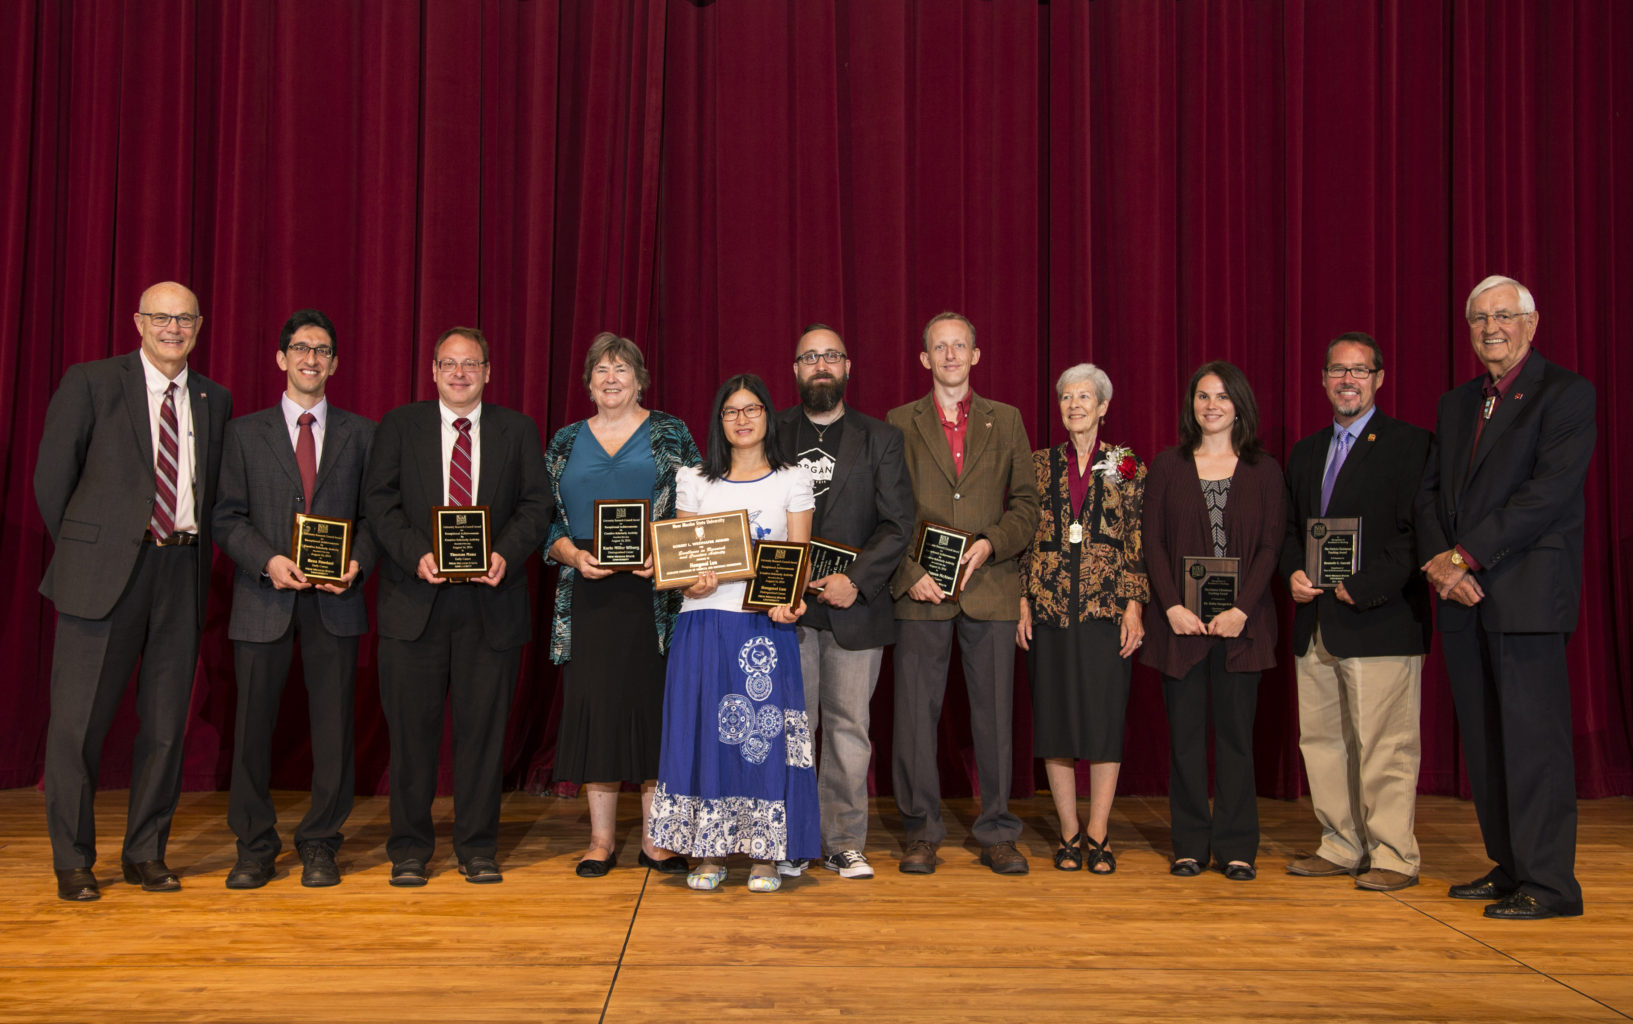 NMSU faculty award winners are joined by NMSU president Garrey Carruthers, far right, and provost Dan Howard, far left, for a group photo following the 2016 fall convocation ceremony at Atkinson Recital Hall. Awardees include, from left to right, Reza Foudazi, Tom Manz, Karin Wiburg, Hongmei Luo, Michael Hout, James McAteer, Karen Becklin, Erika Gergerich and Kenneth Carroll. (Photo by Andres Leighton) AUG16